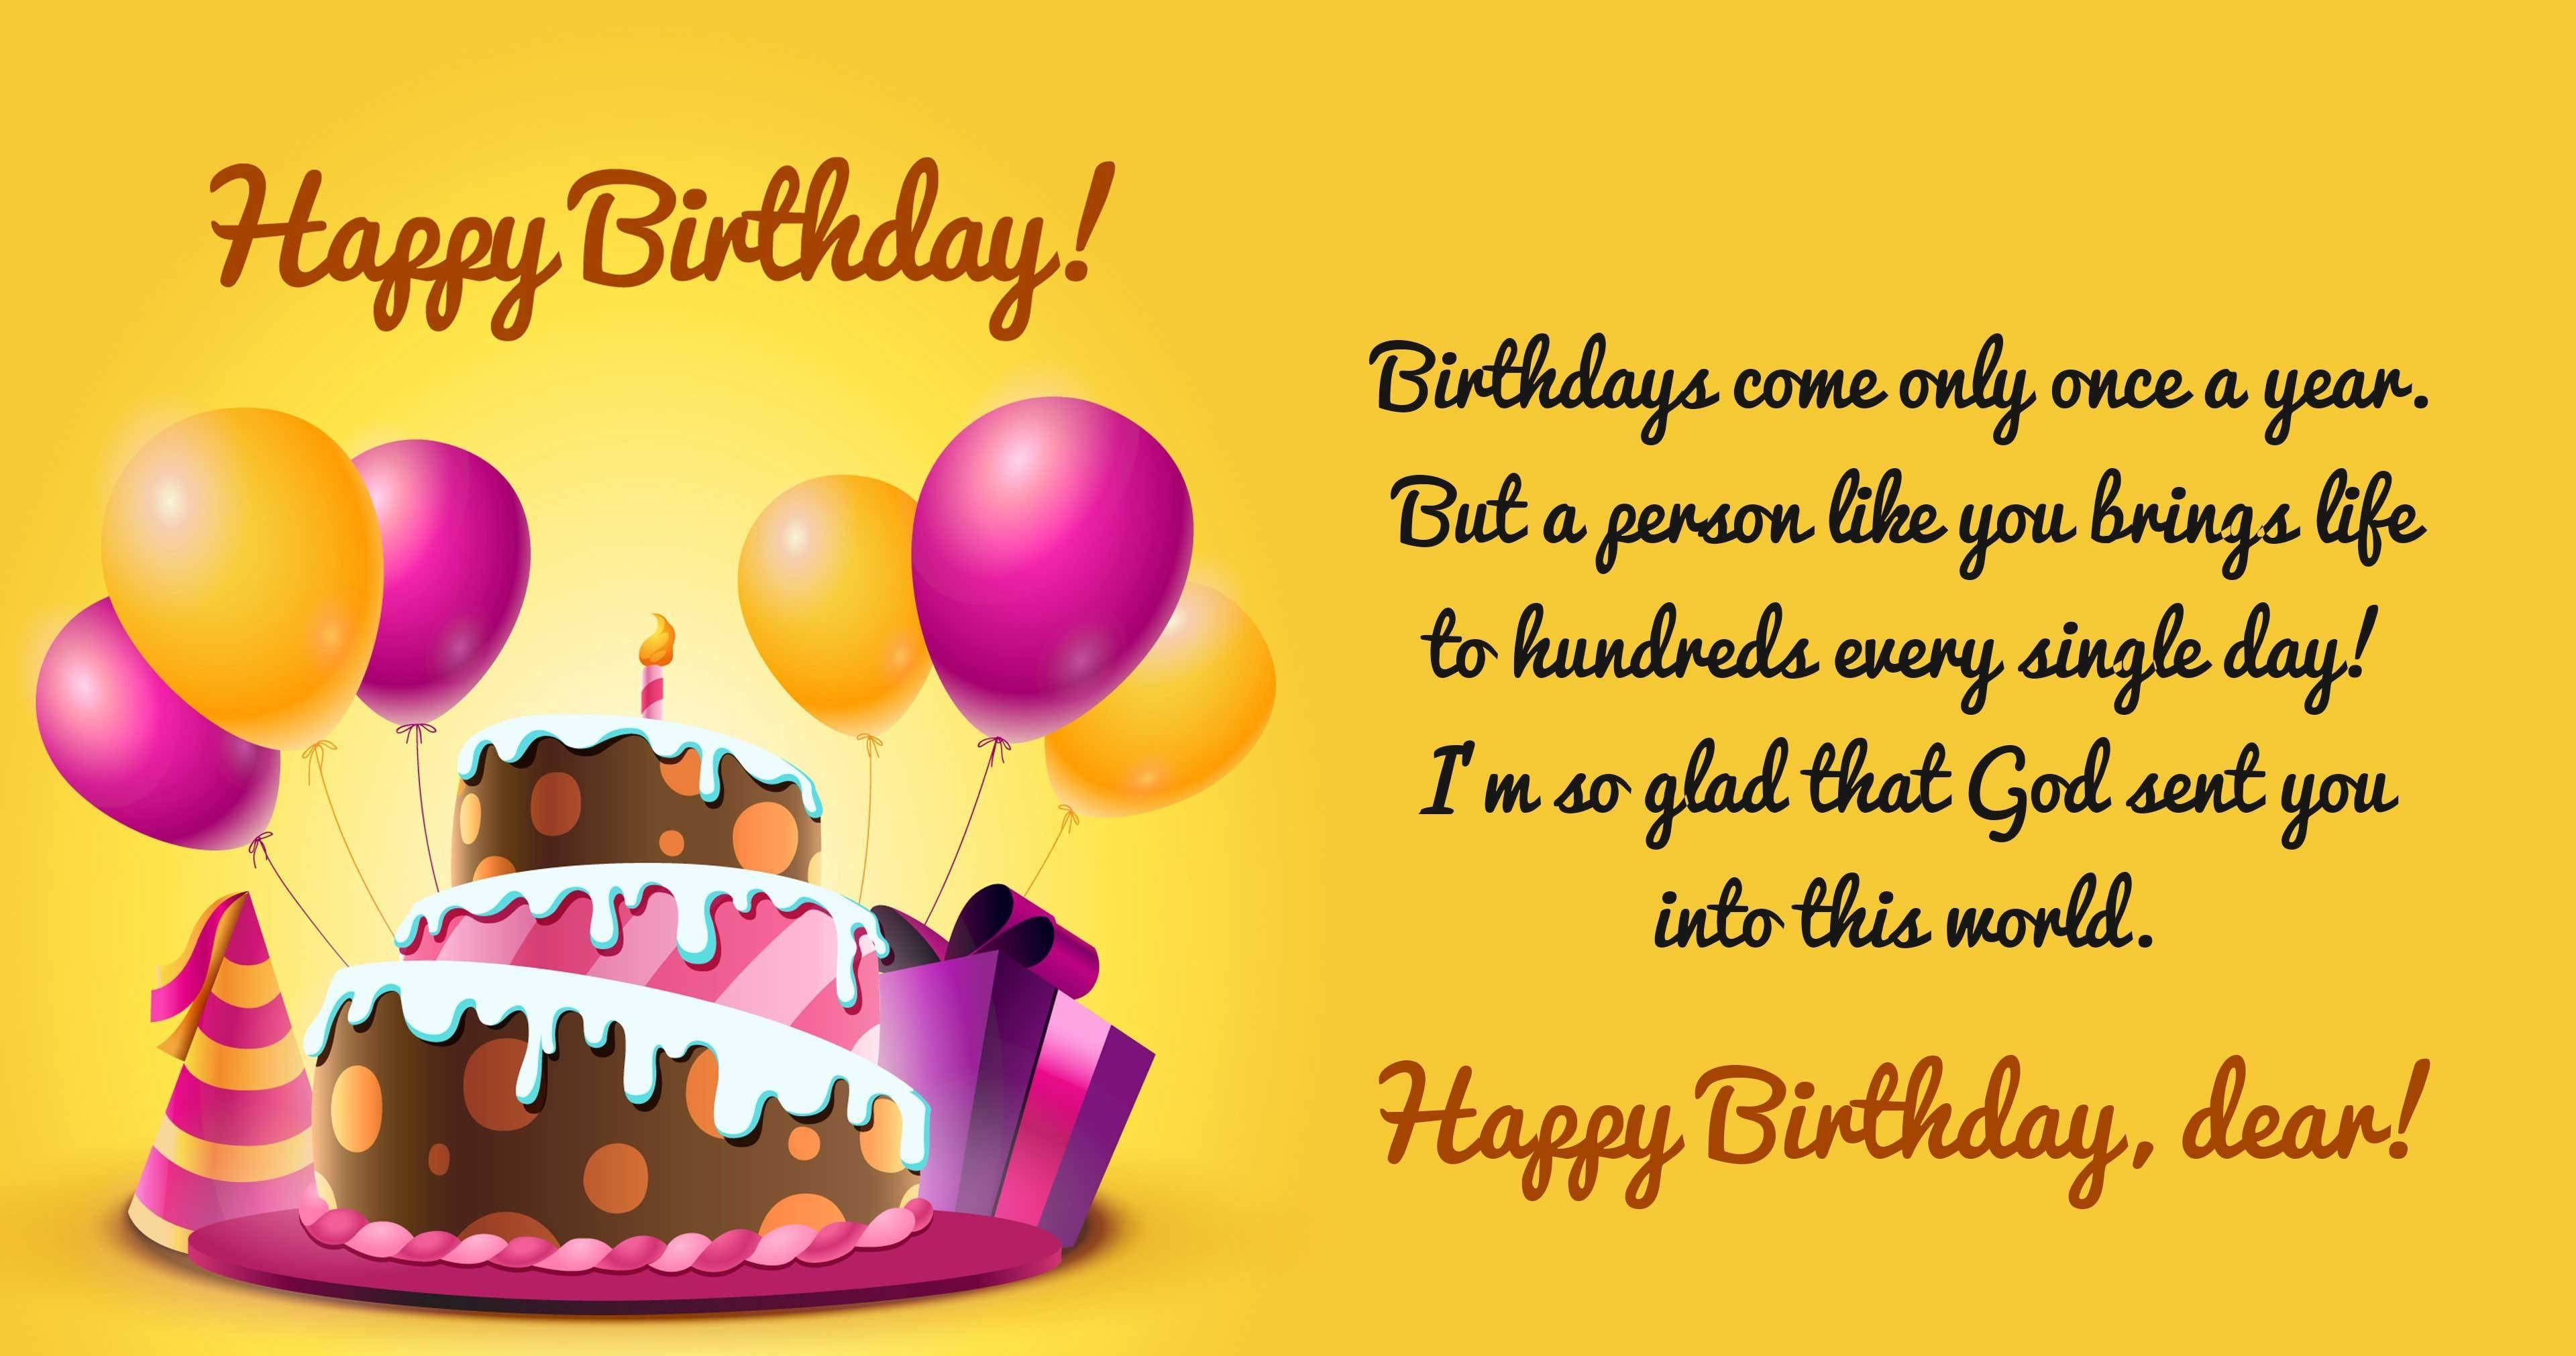 Birthday Wishes Quotes Happy Birthday Wishes Friendship 21st Birthday Wishes Birthday Wishes For A Friend Messages